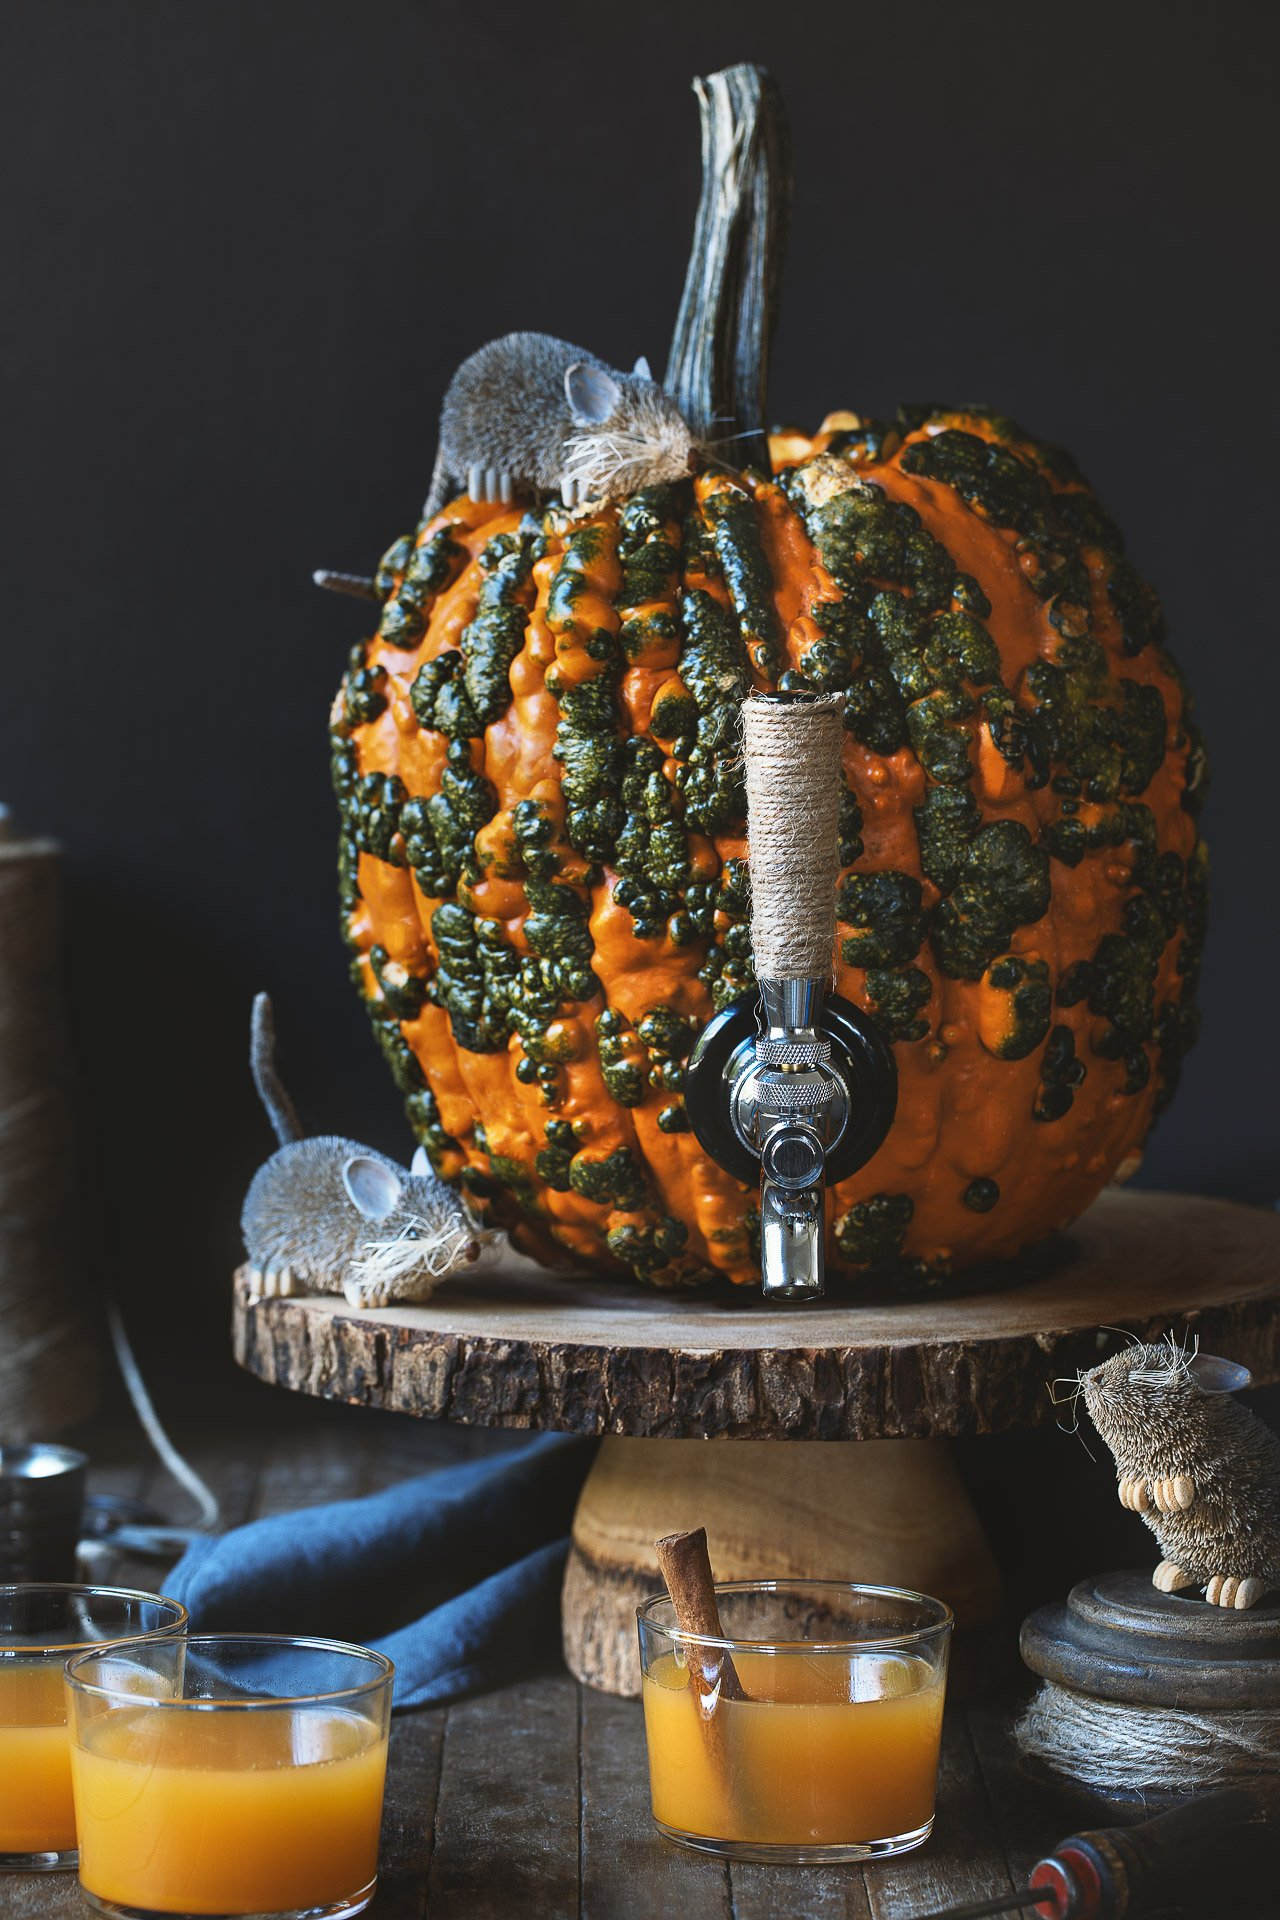 DIY Pumpkin Keg for your next Halloween party!